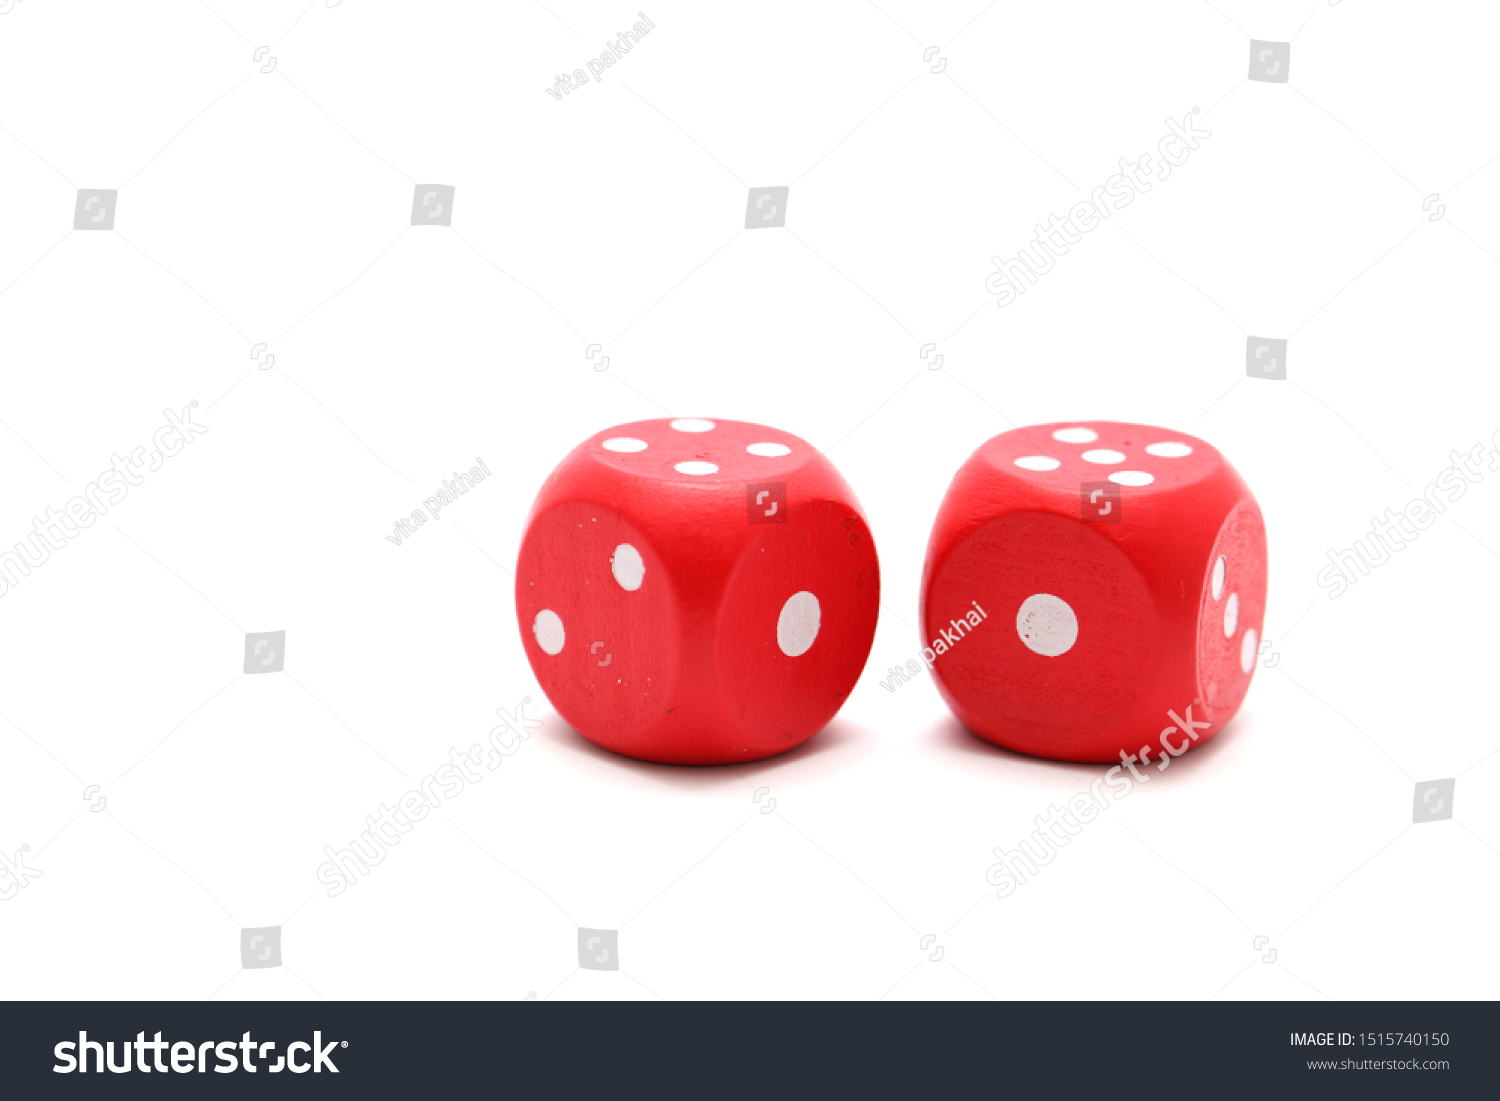 red dices on a white background #1515740150